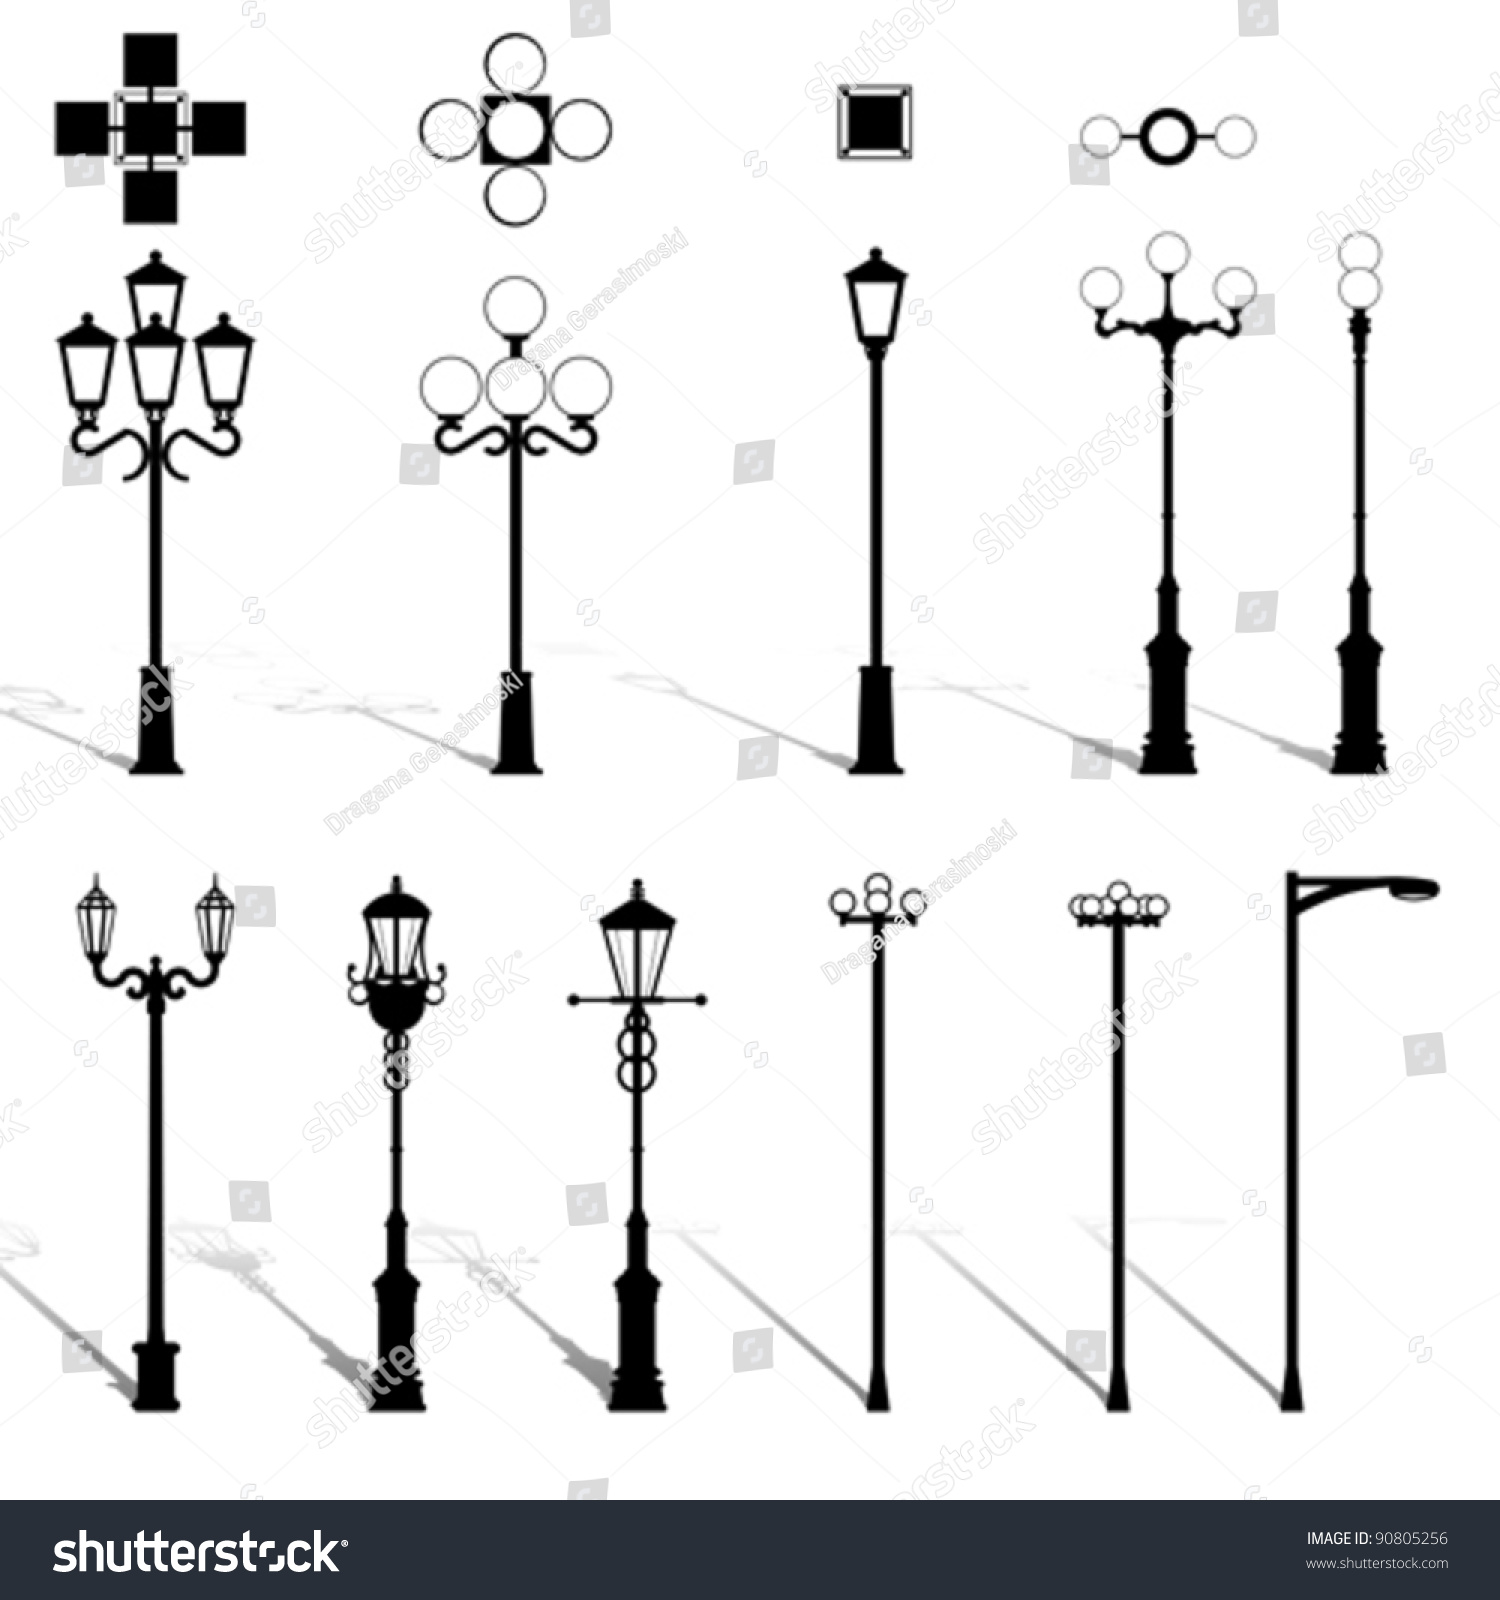 modern lightning outdoor lamp pole set stock vector  modern lightning outdoor lamp pole set architecture outdoor electric design equipment elements street light